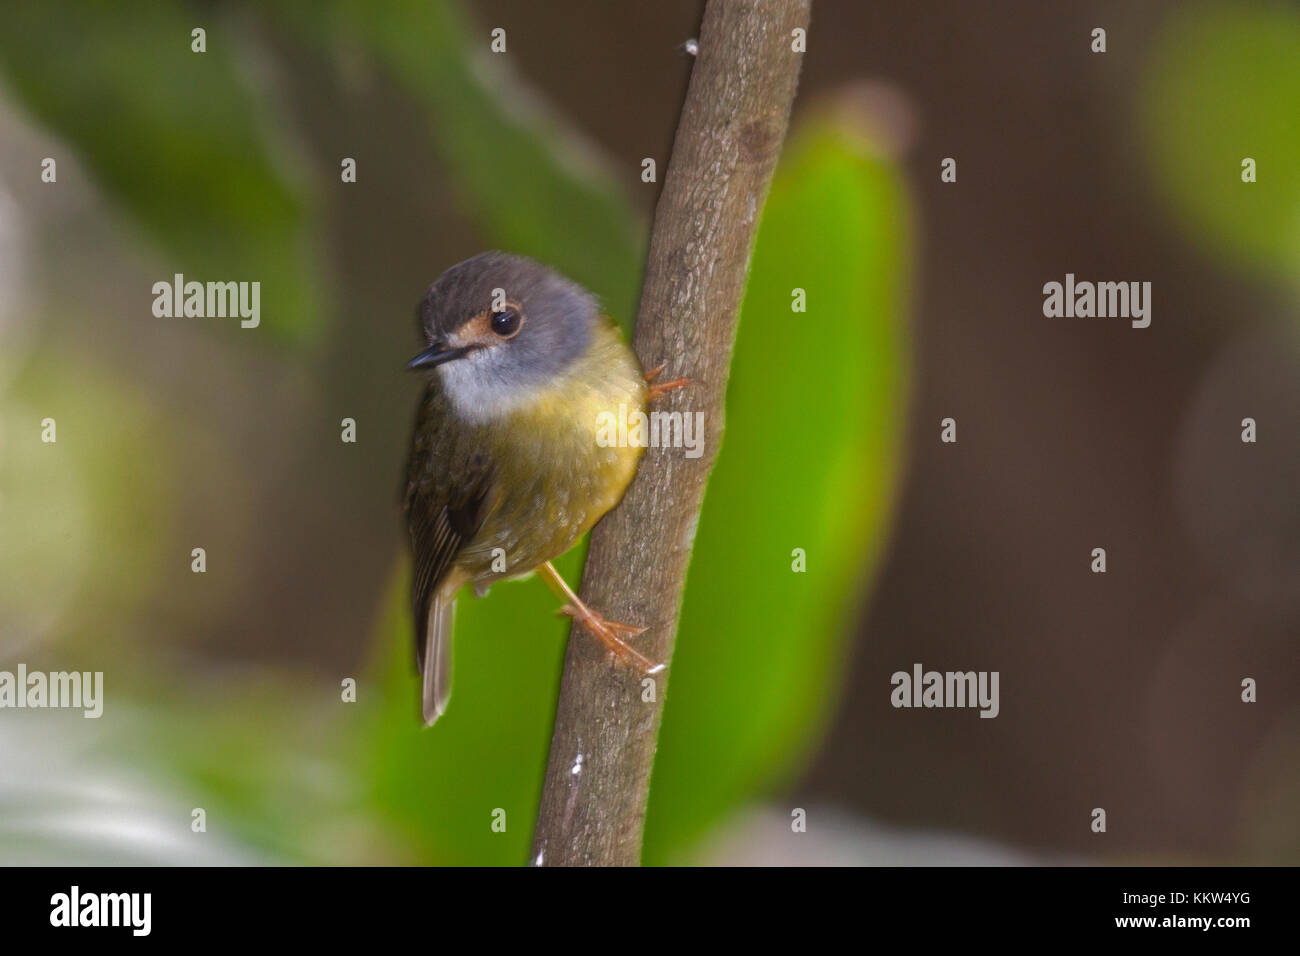 Pale yellow robin subspecies nana clinging to branch in woodland. Queensland Australia - Stock Image